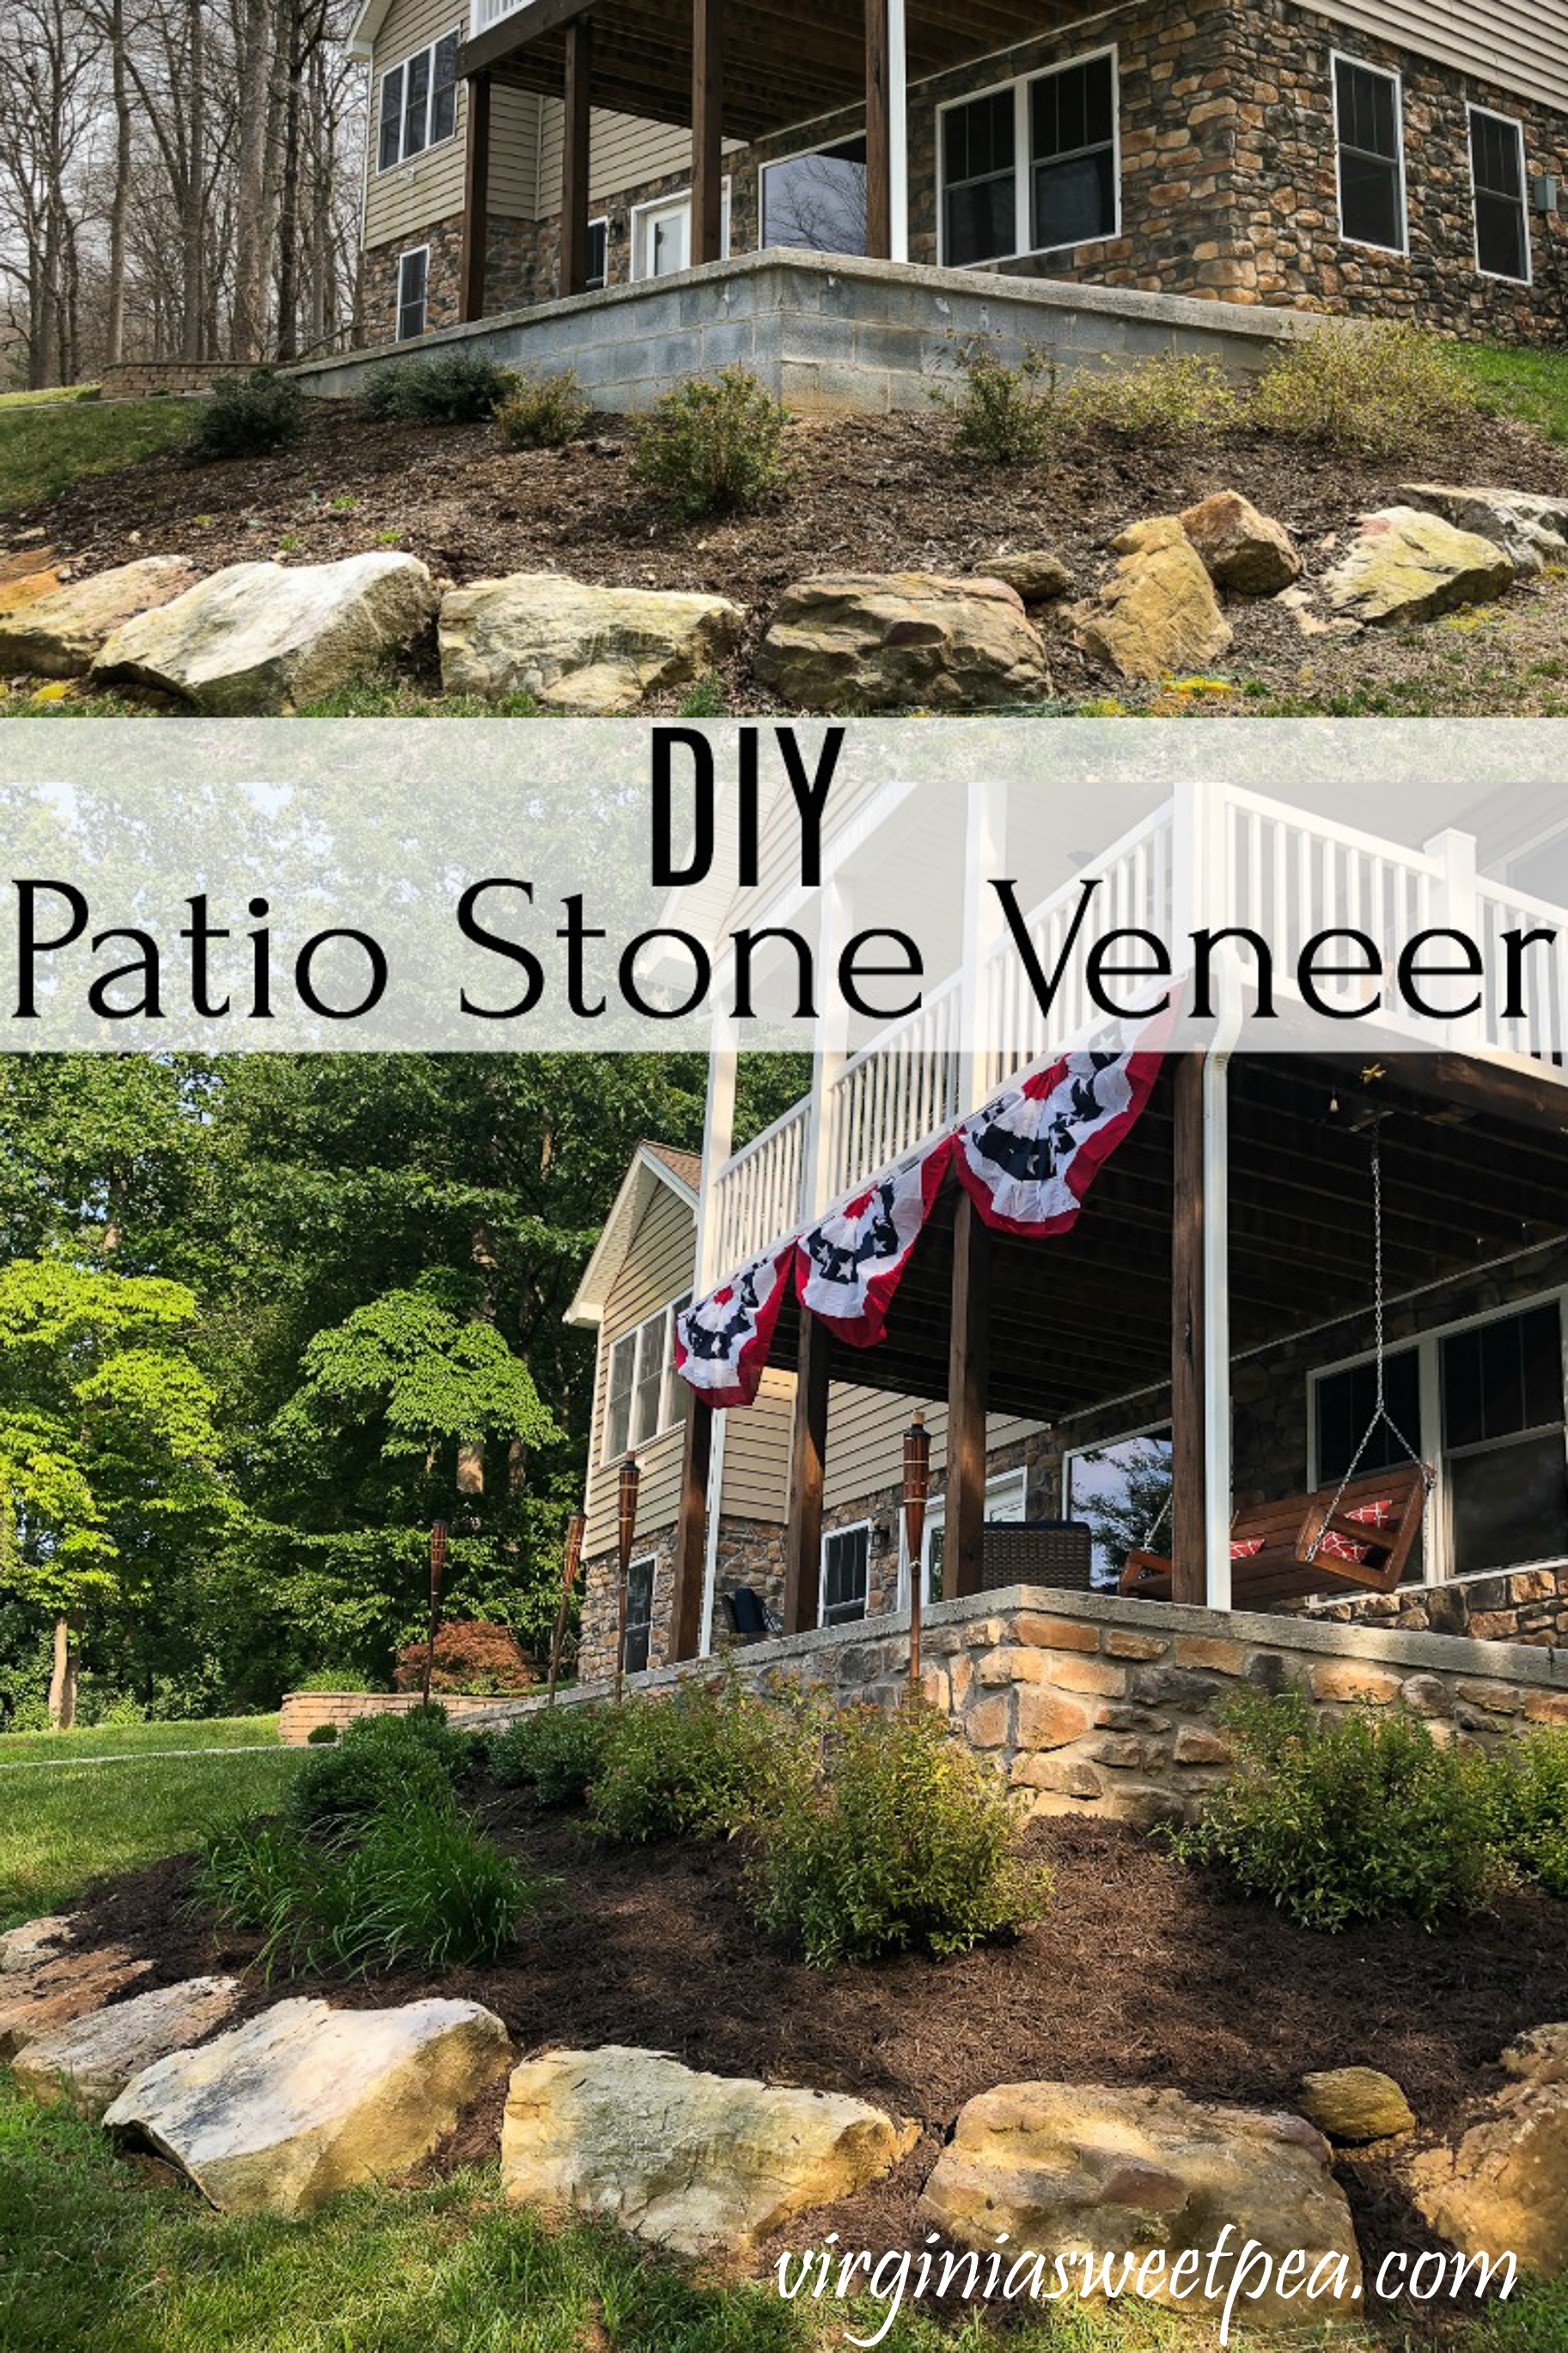 DIY Patio Stone Veneer - Give a patio a finished look with the addition of stone veneer. via @spaula